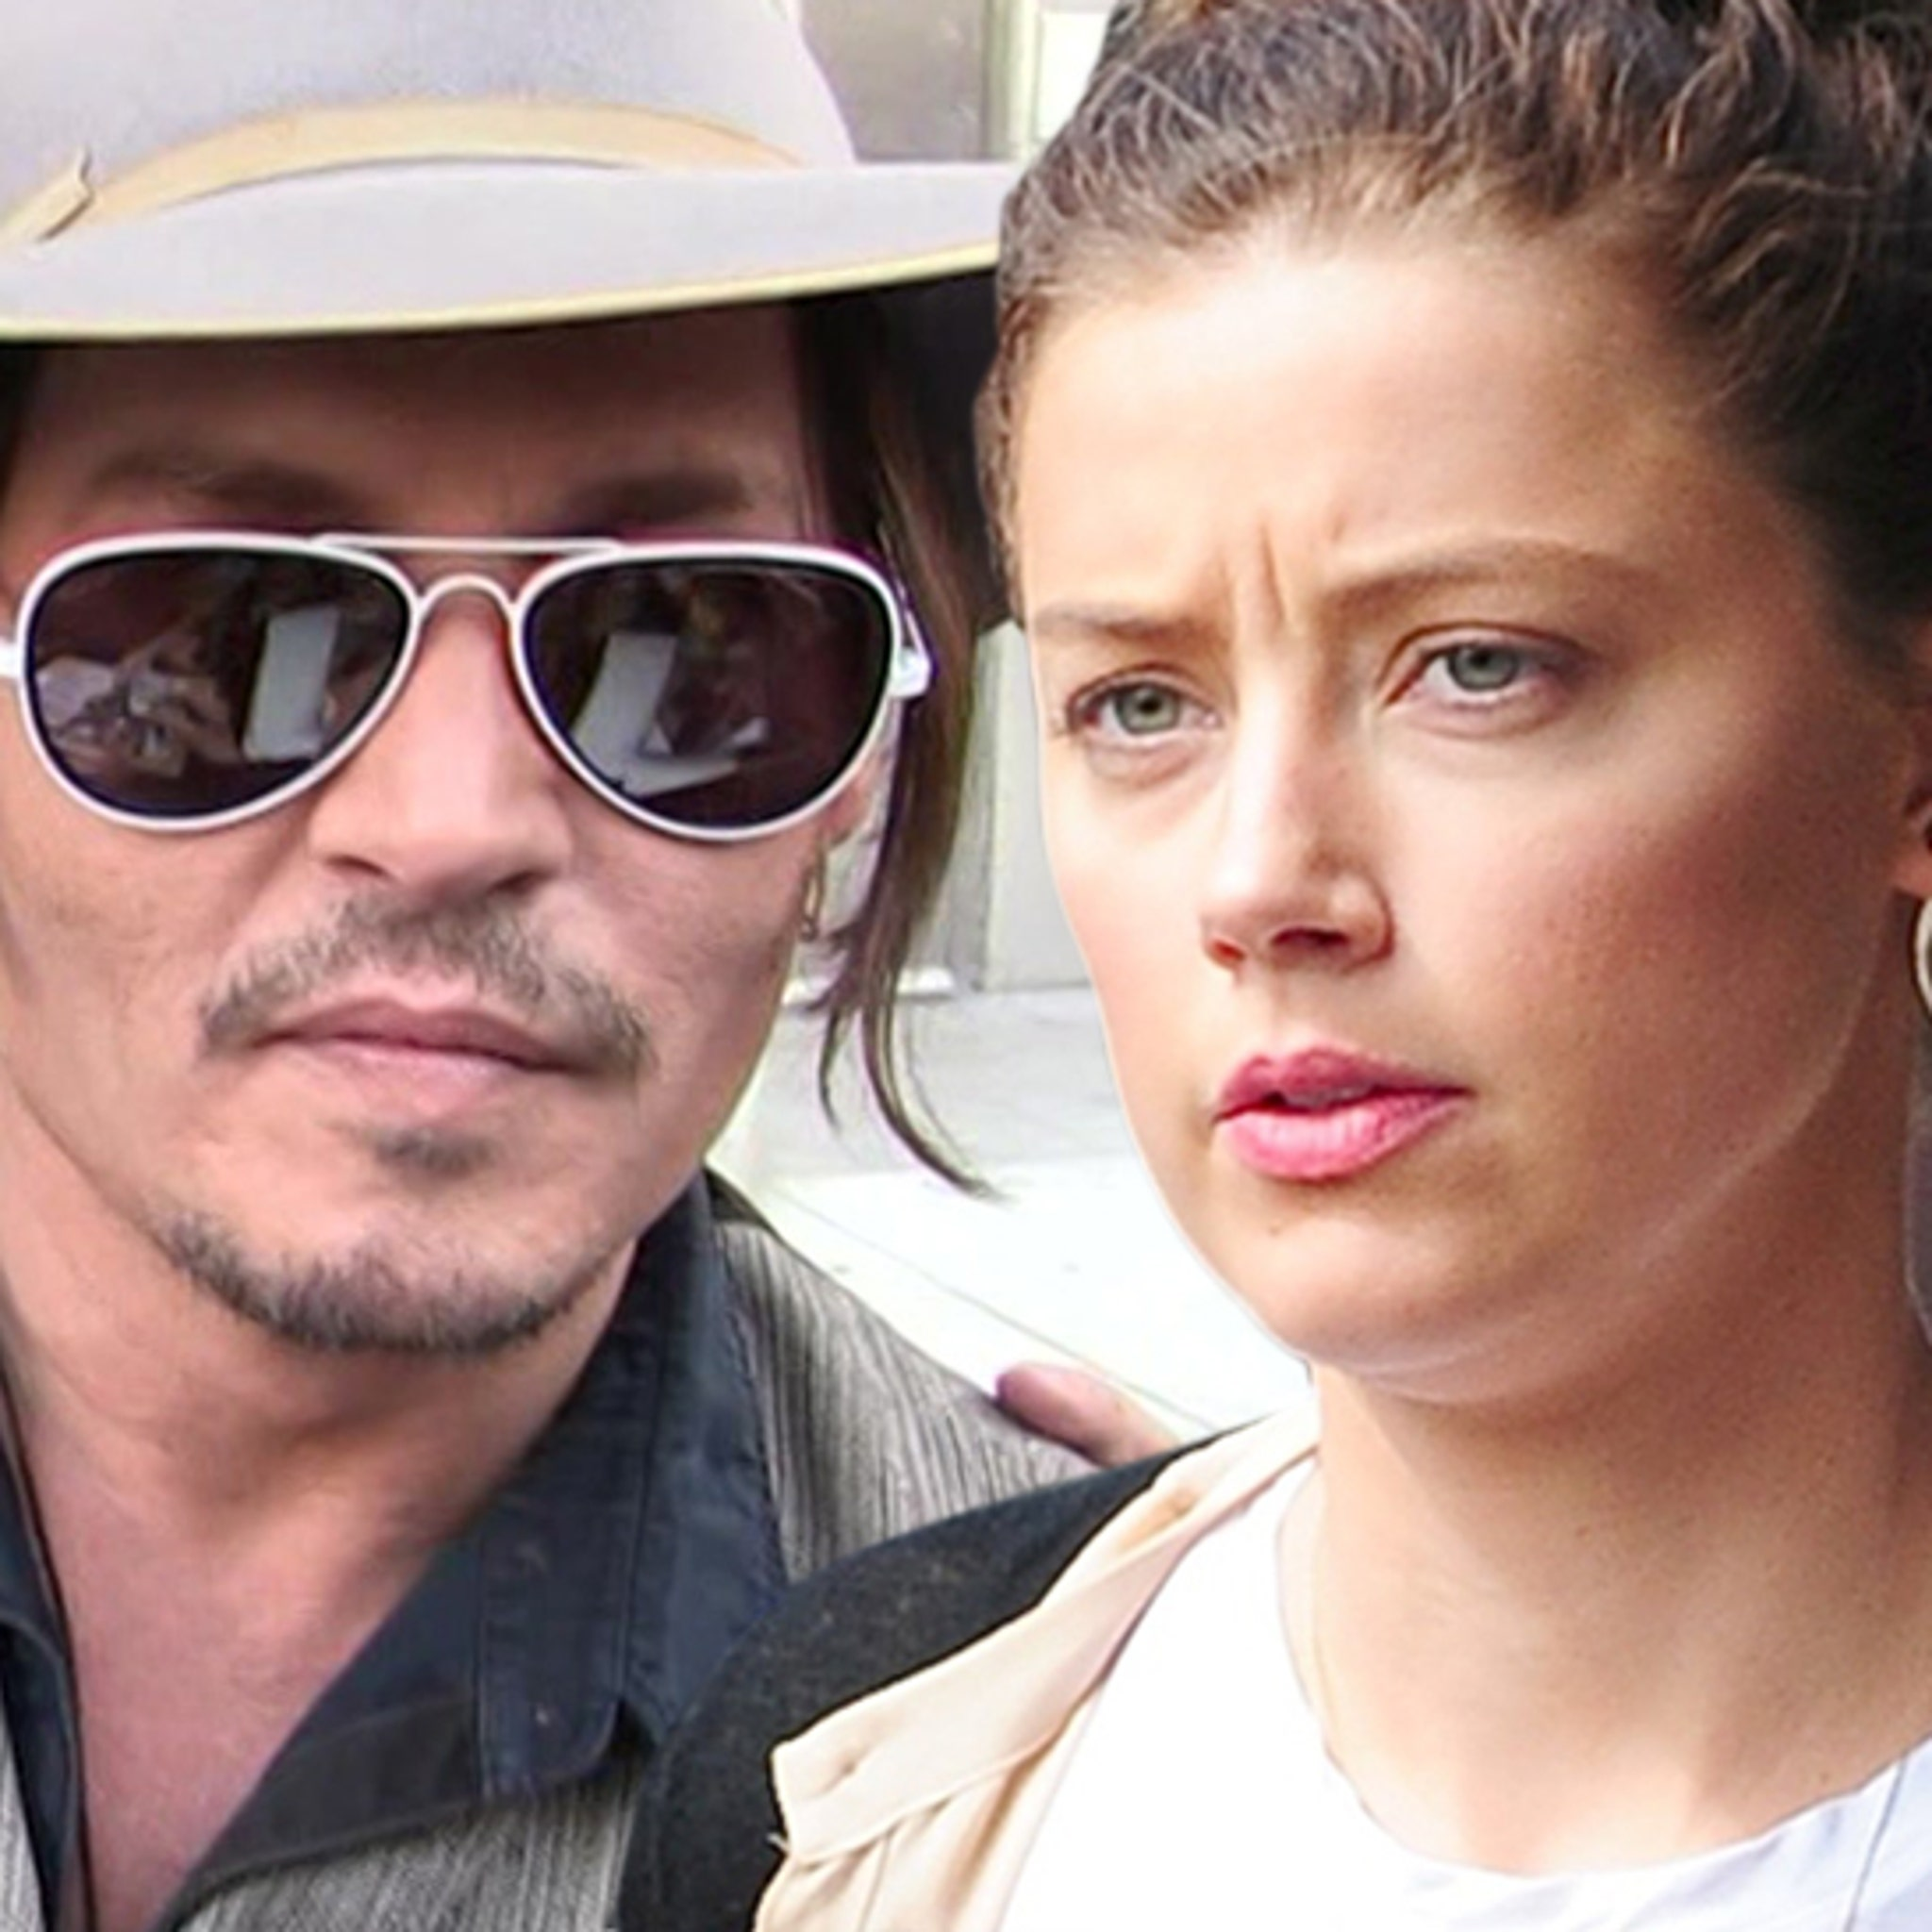 Johnny Depp Changes Amber Heard Knuckle Tattoo Again Scum To Scam